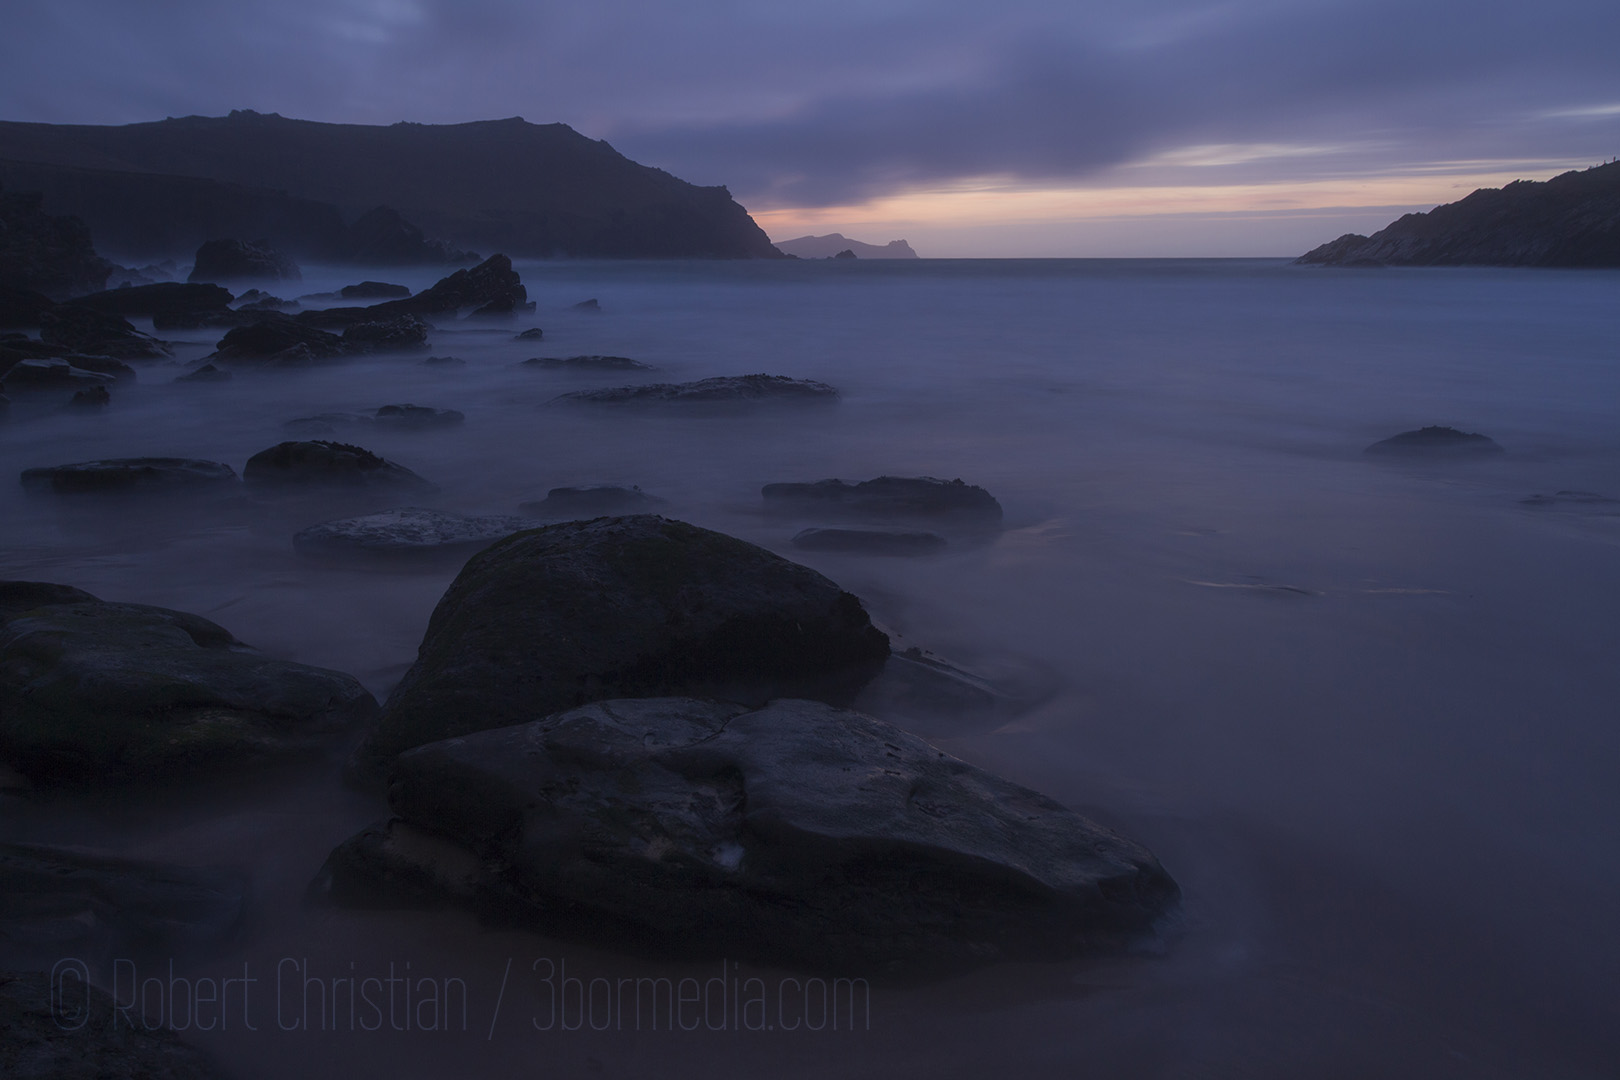 Just before dark on Clogher Strand.